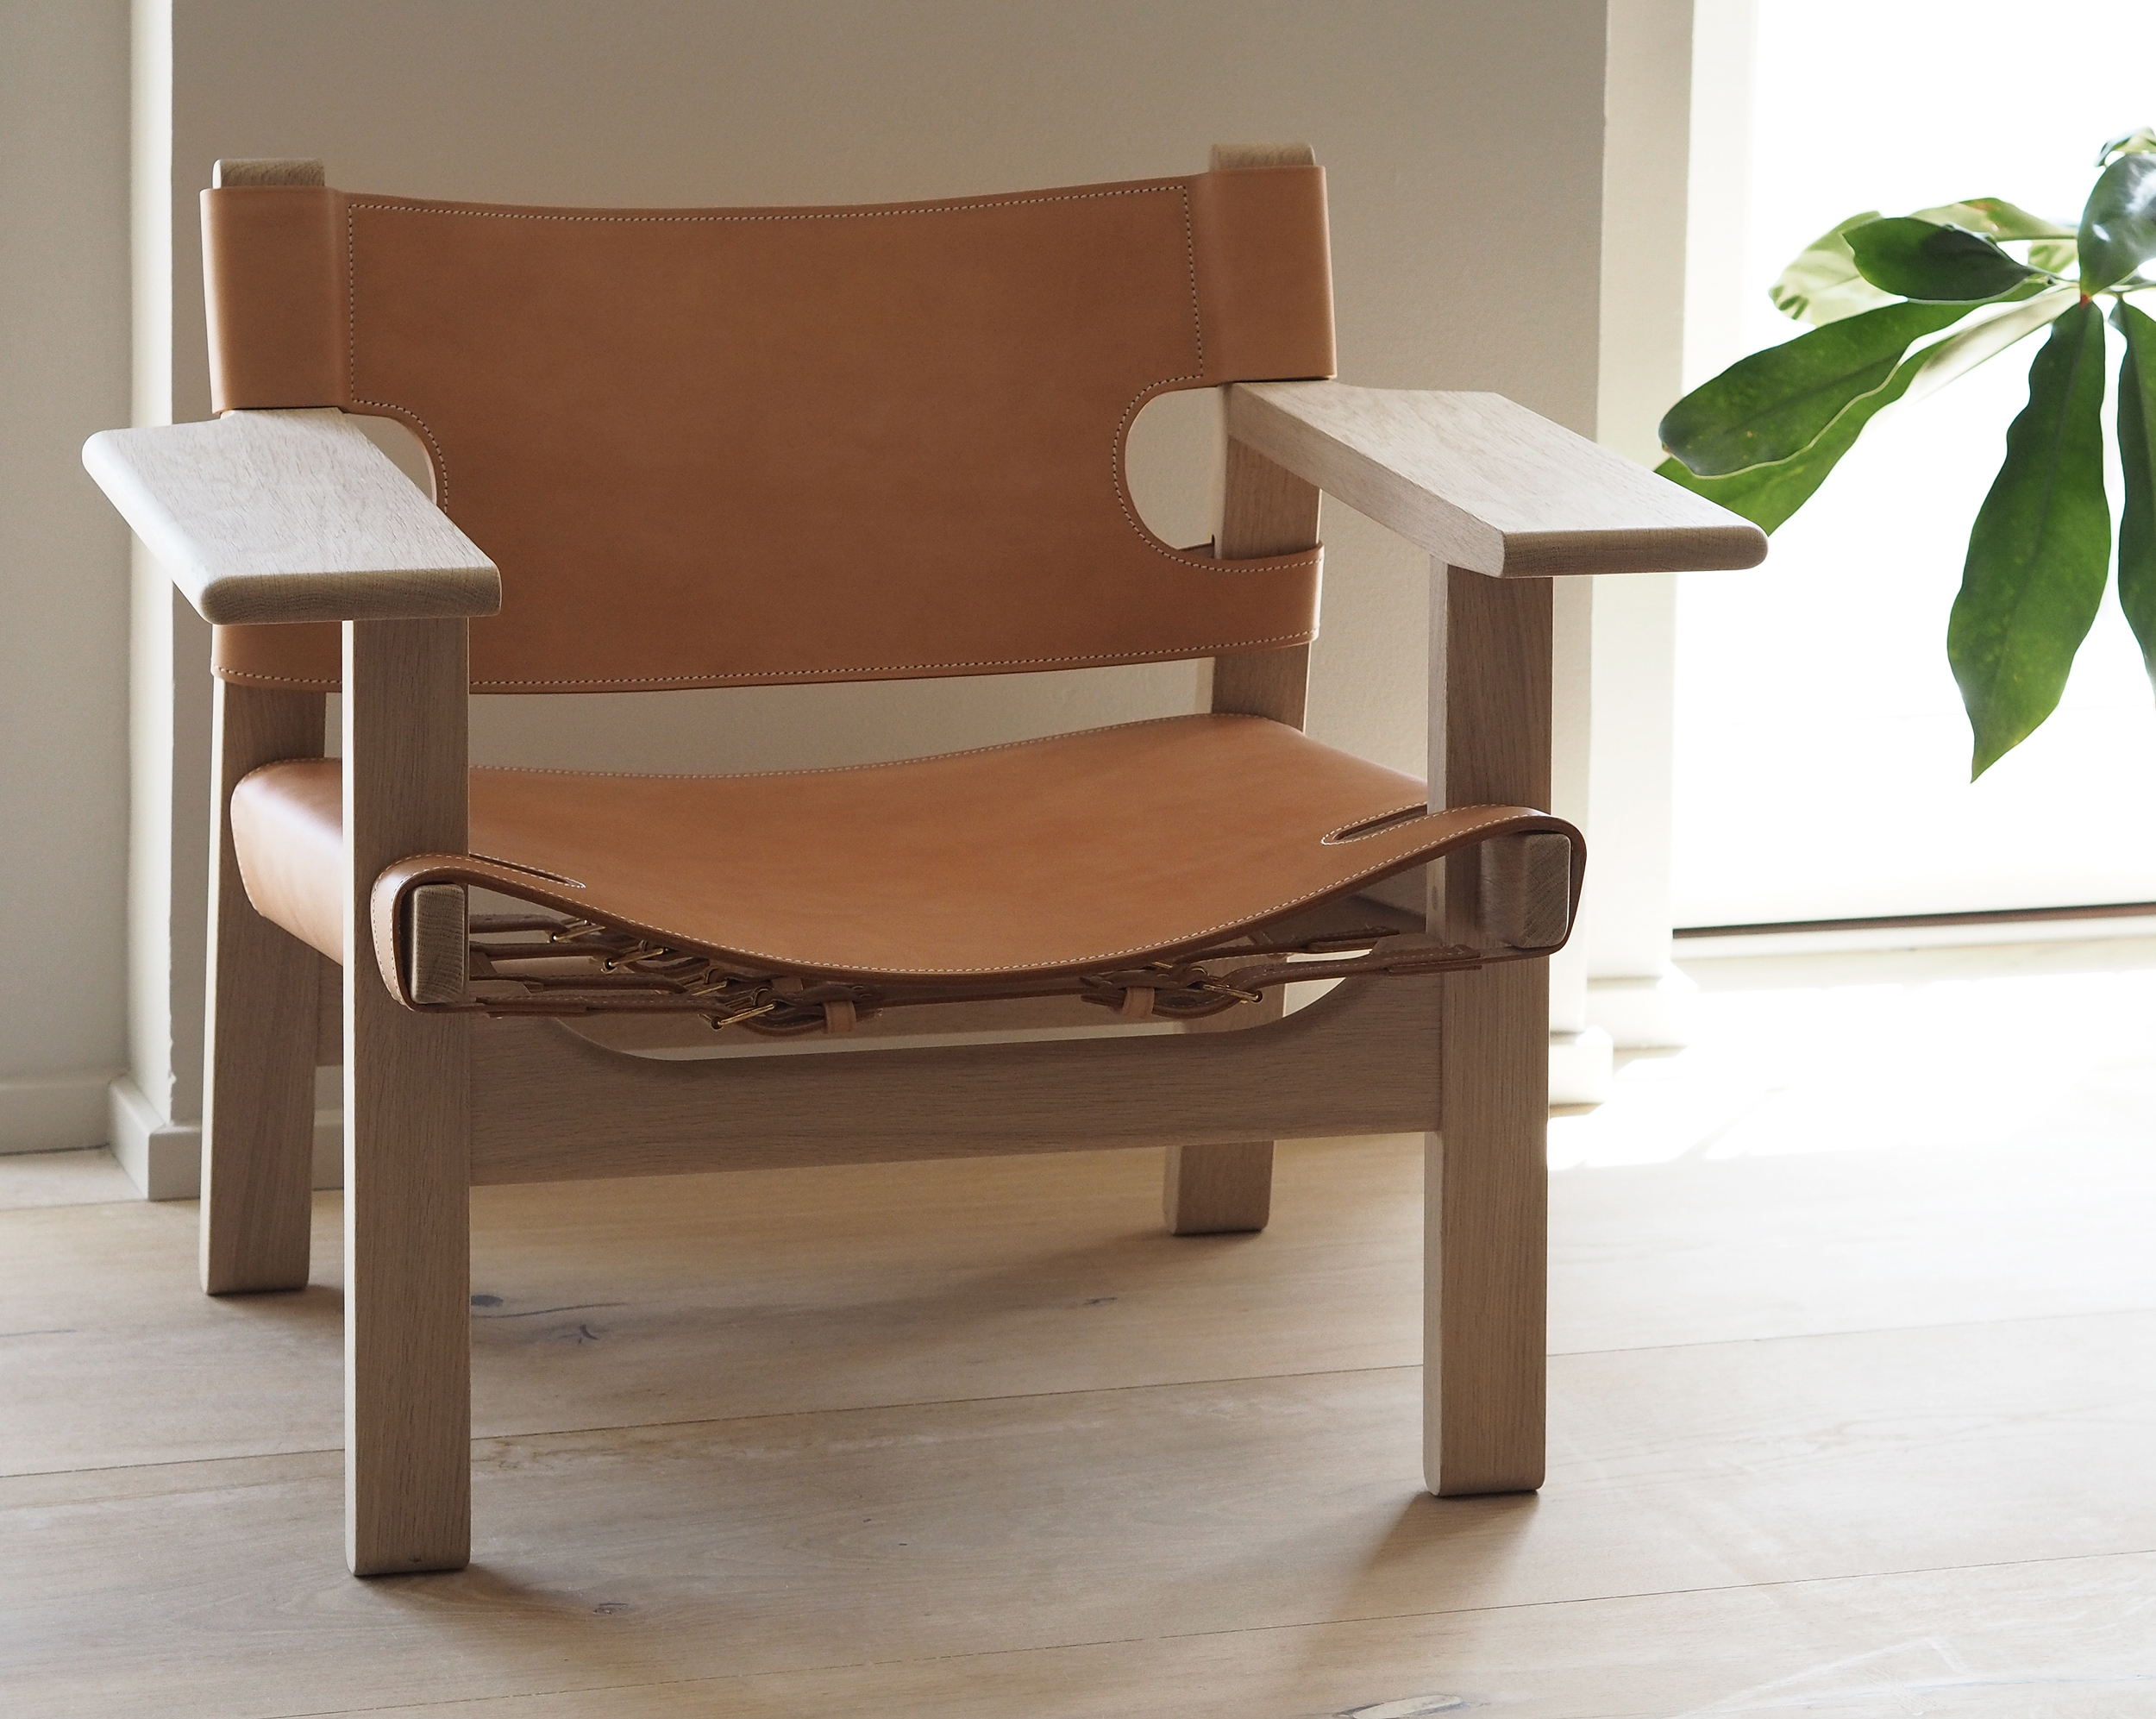 Fredericia a heritage of Danish furniture design and current